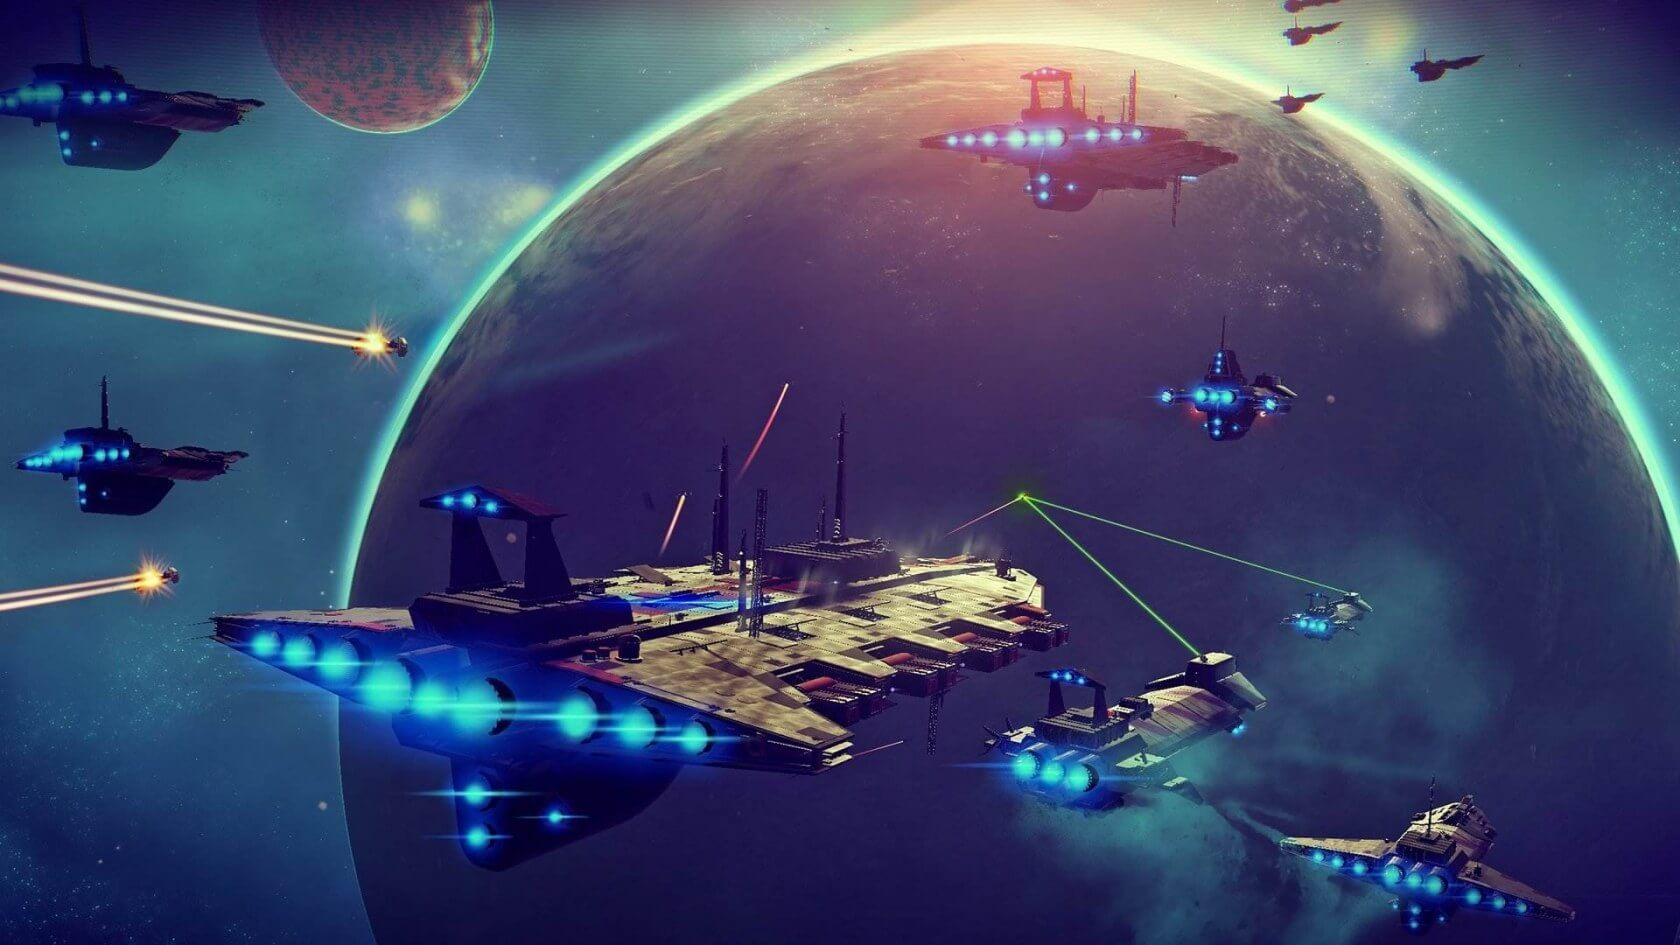 GOG's version of No Man's Sky is missing multiplayer